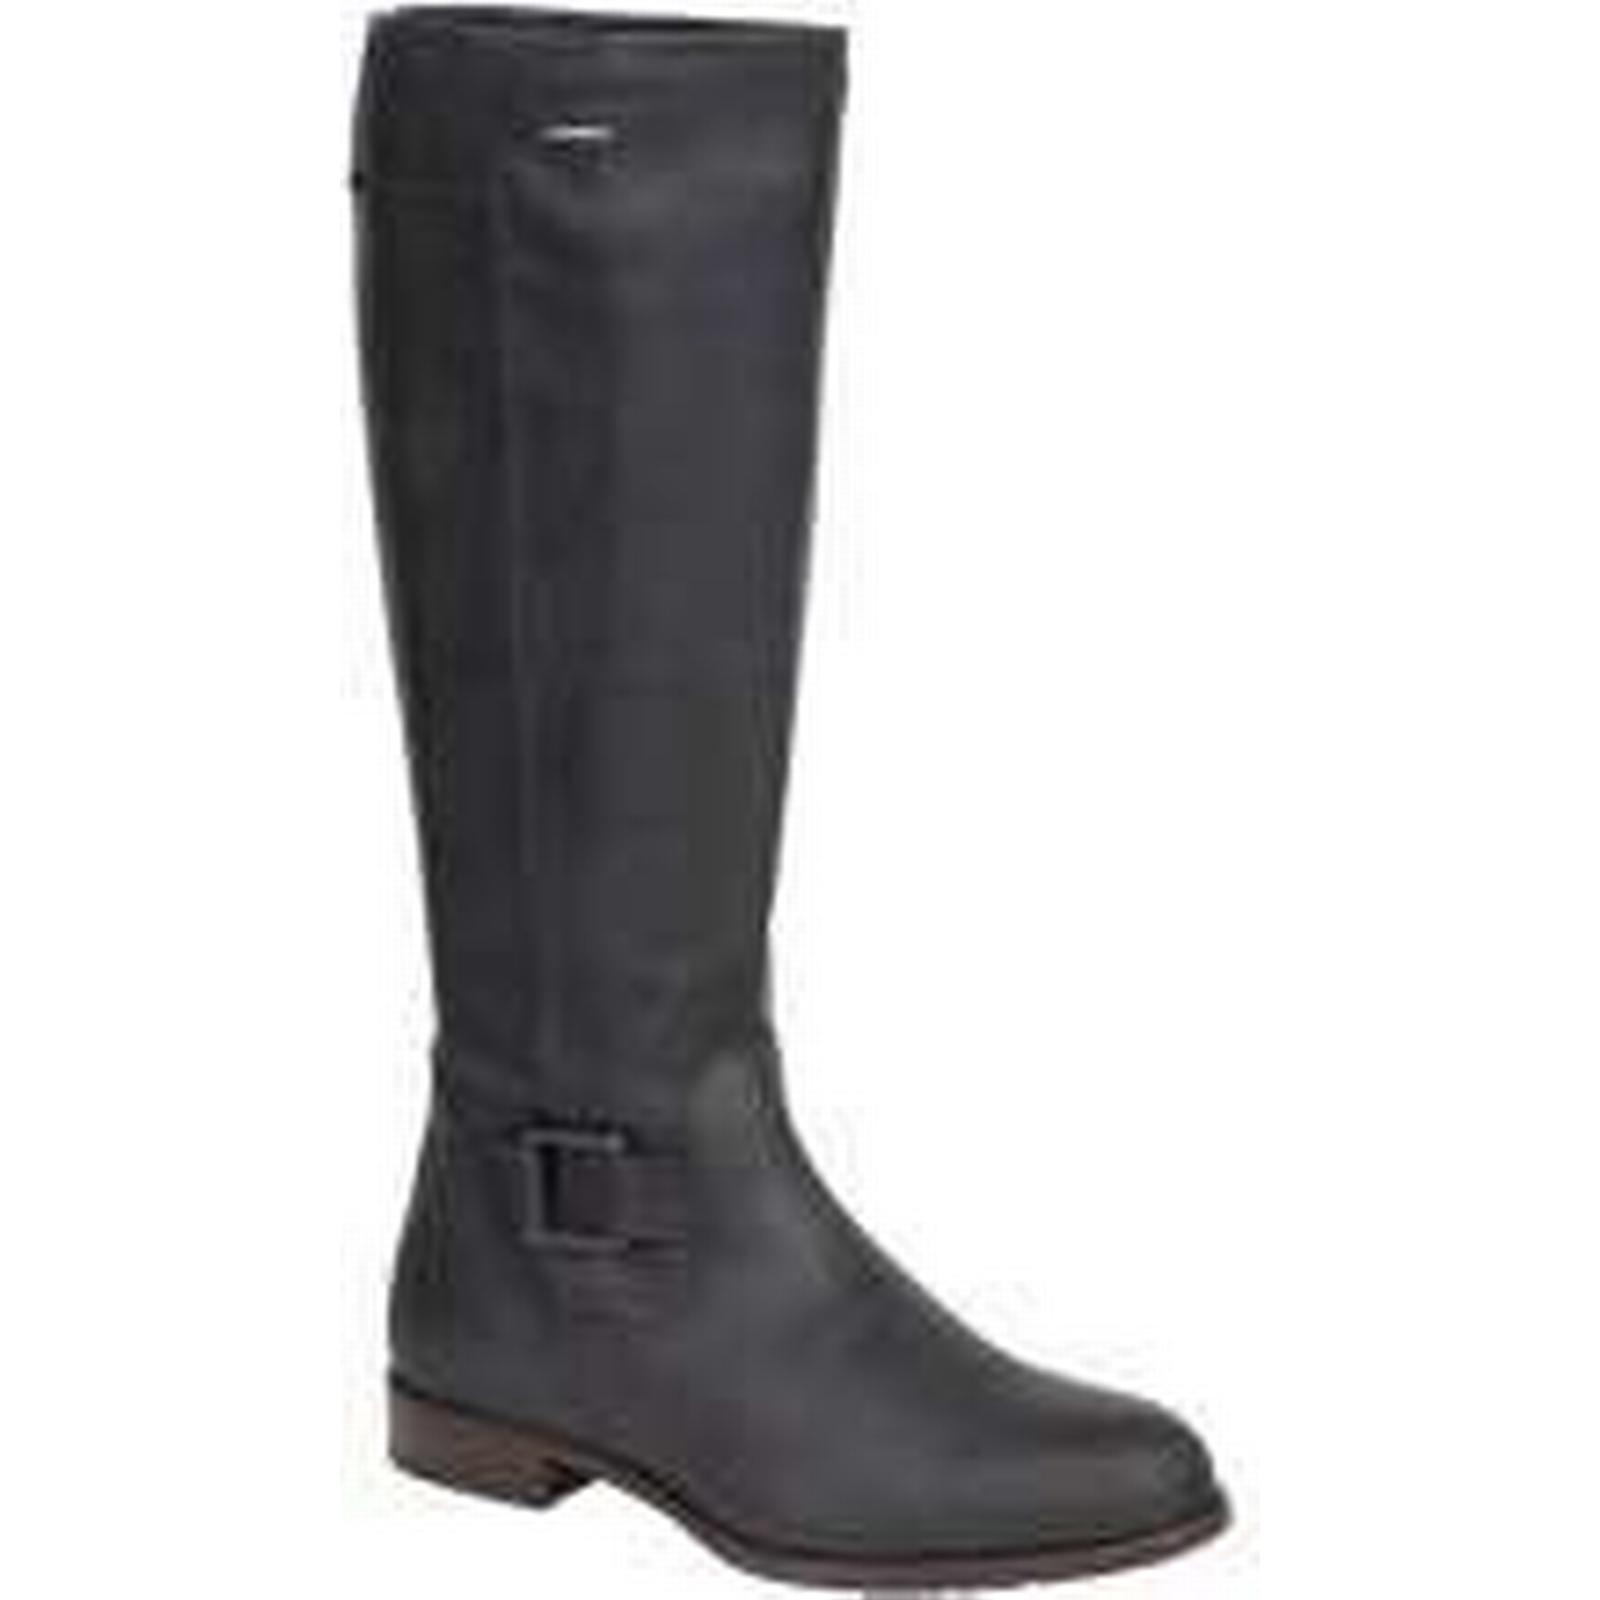 Dubarry Limerick Boots, Black, UK (EU36) 3.5 (EU36) UK 5a622e